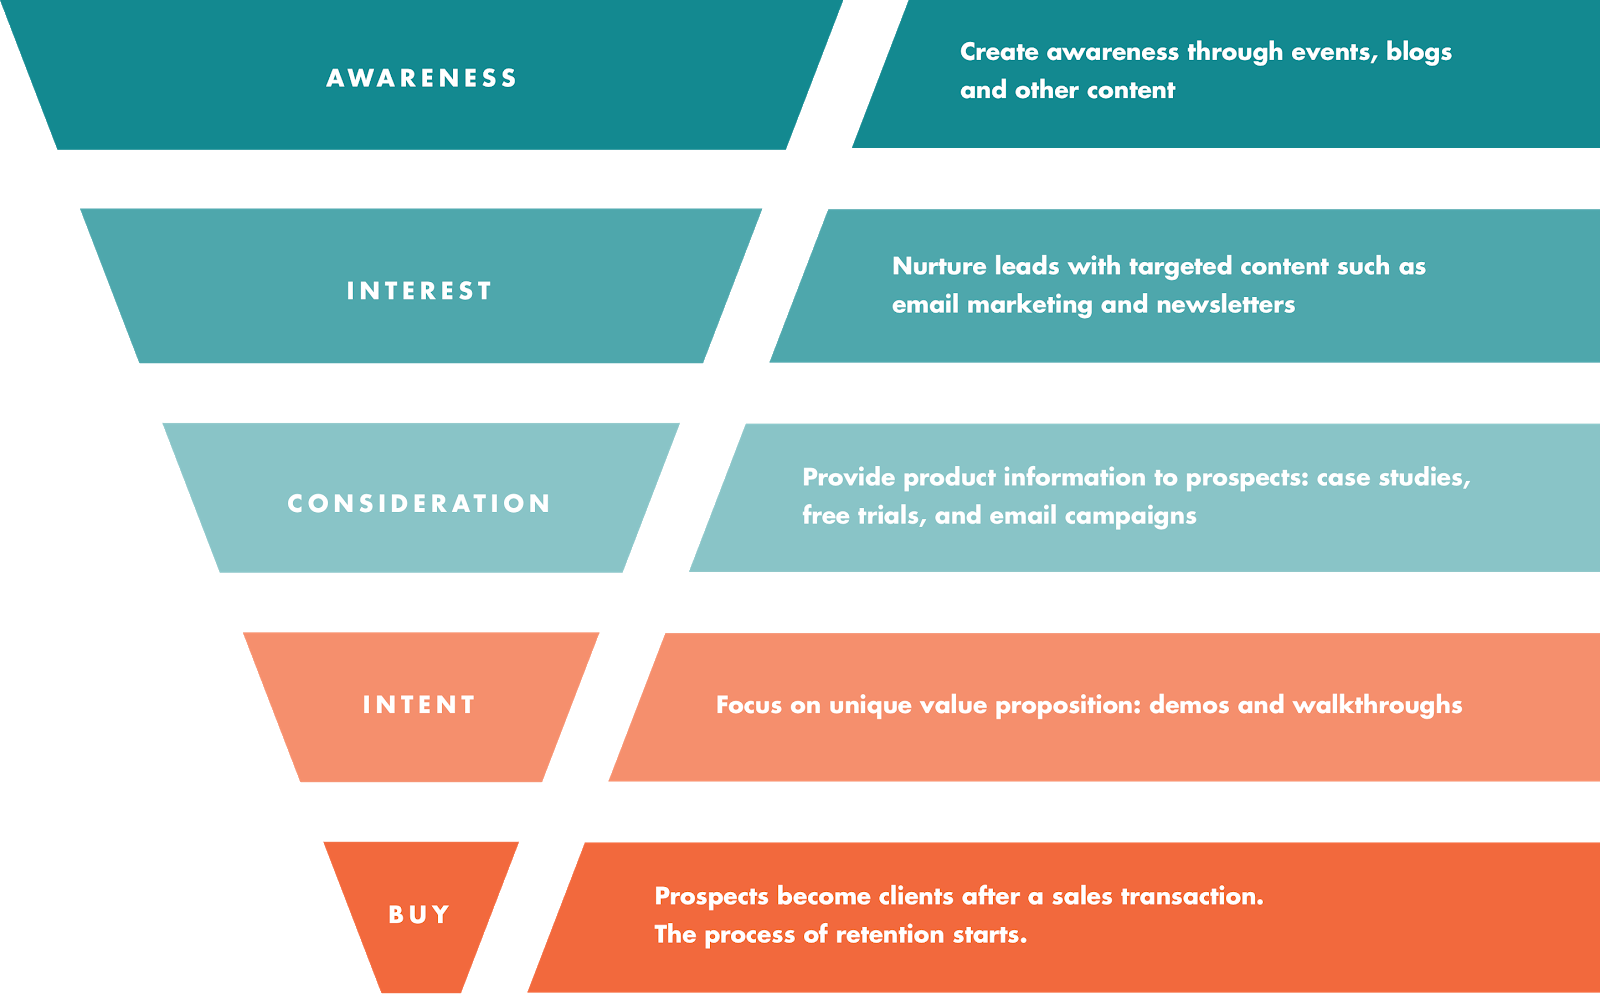 Displays each stage of the marketing funnel: awareness, interest, consideration, intent and buy.